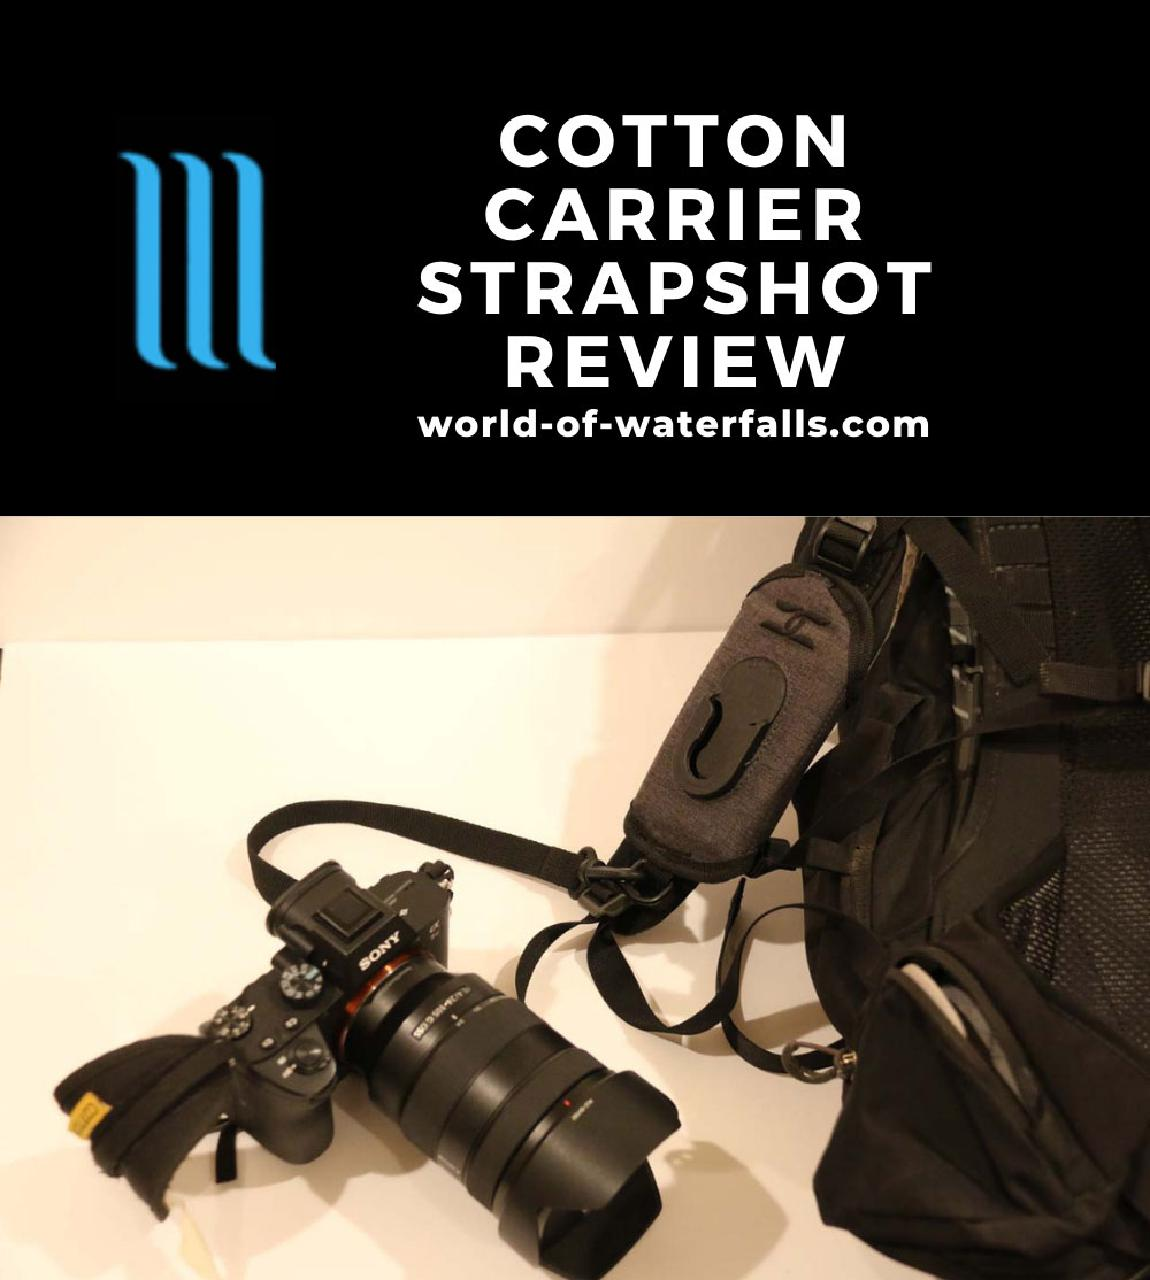 The Cotton Carrier CCS G3 Strapshot Holster with my camera tethered to it